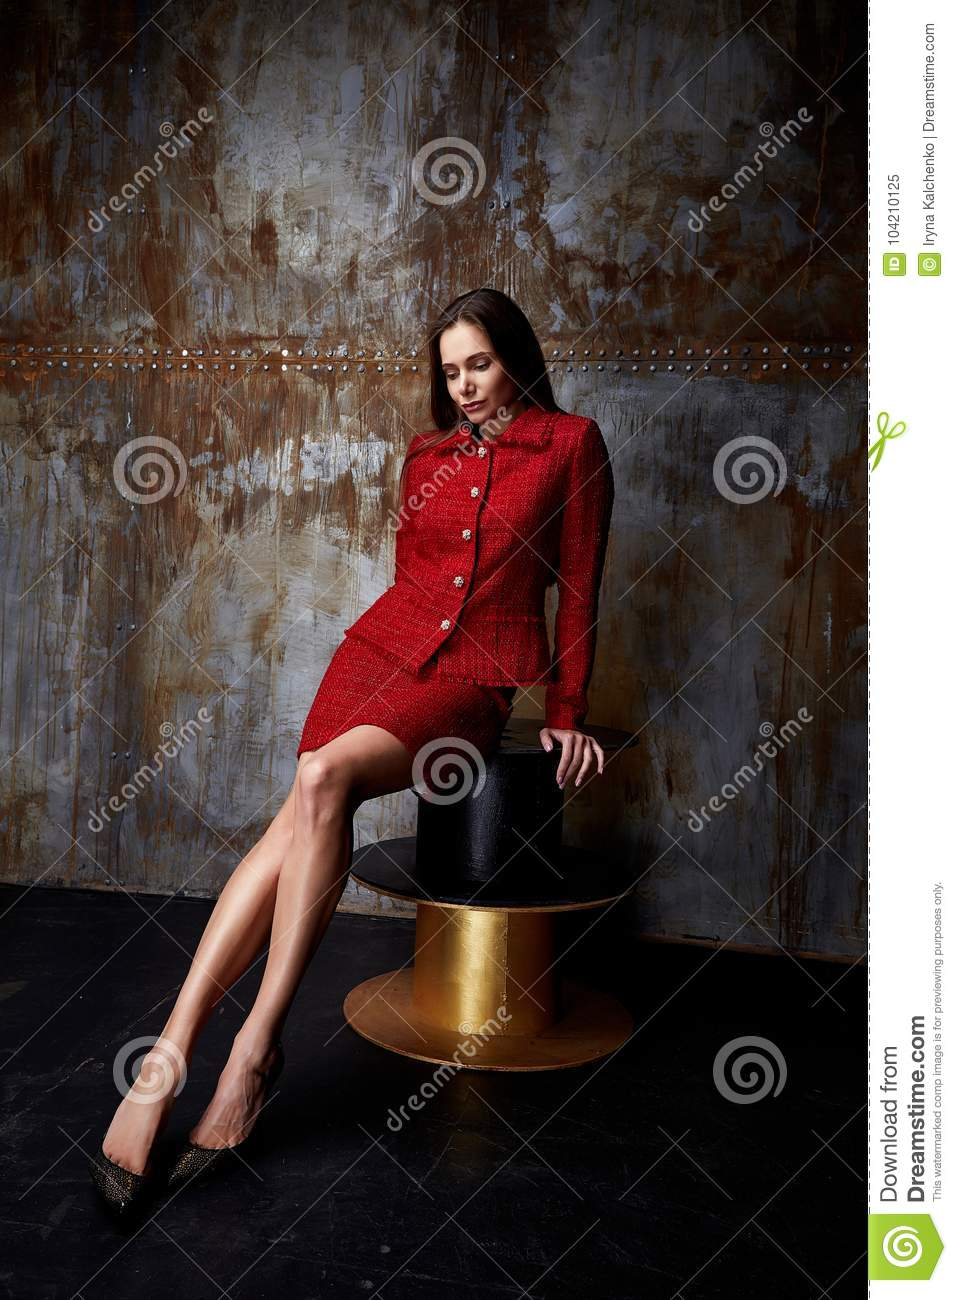 34fa86517 Beautiful business woman lady style perfect body shape brunette hair wear  red color dress suit jacket skirt elegance casual style glamour fashion  accessory ...